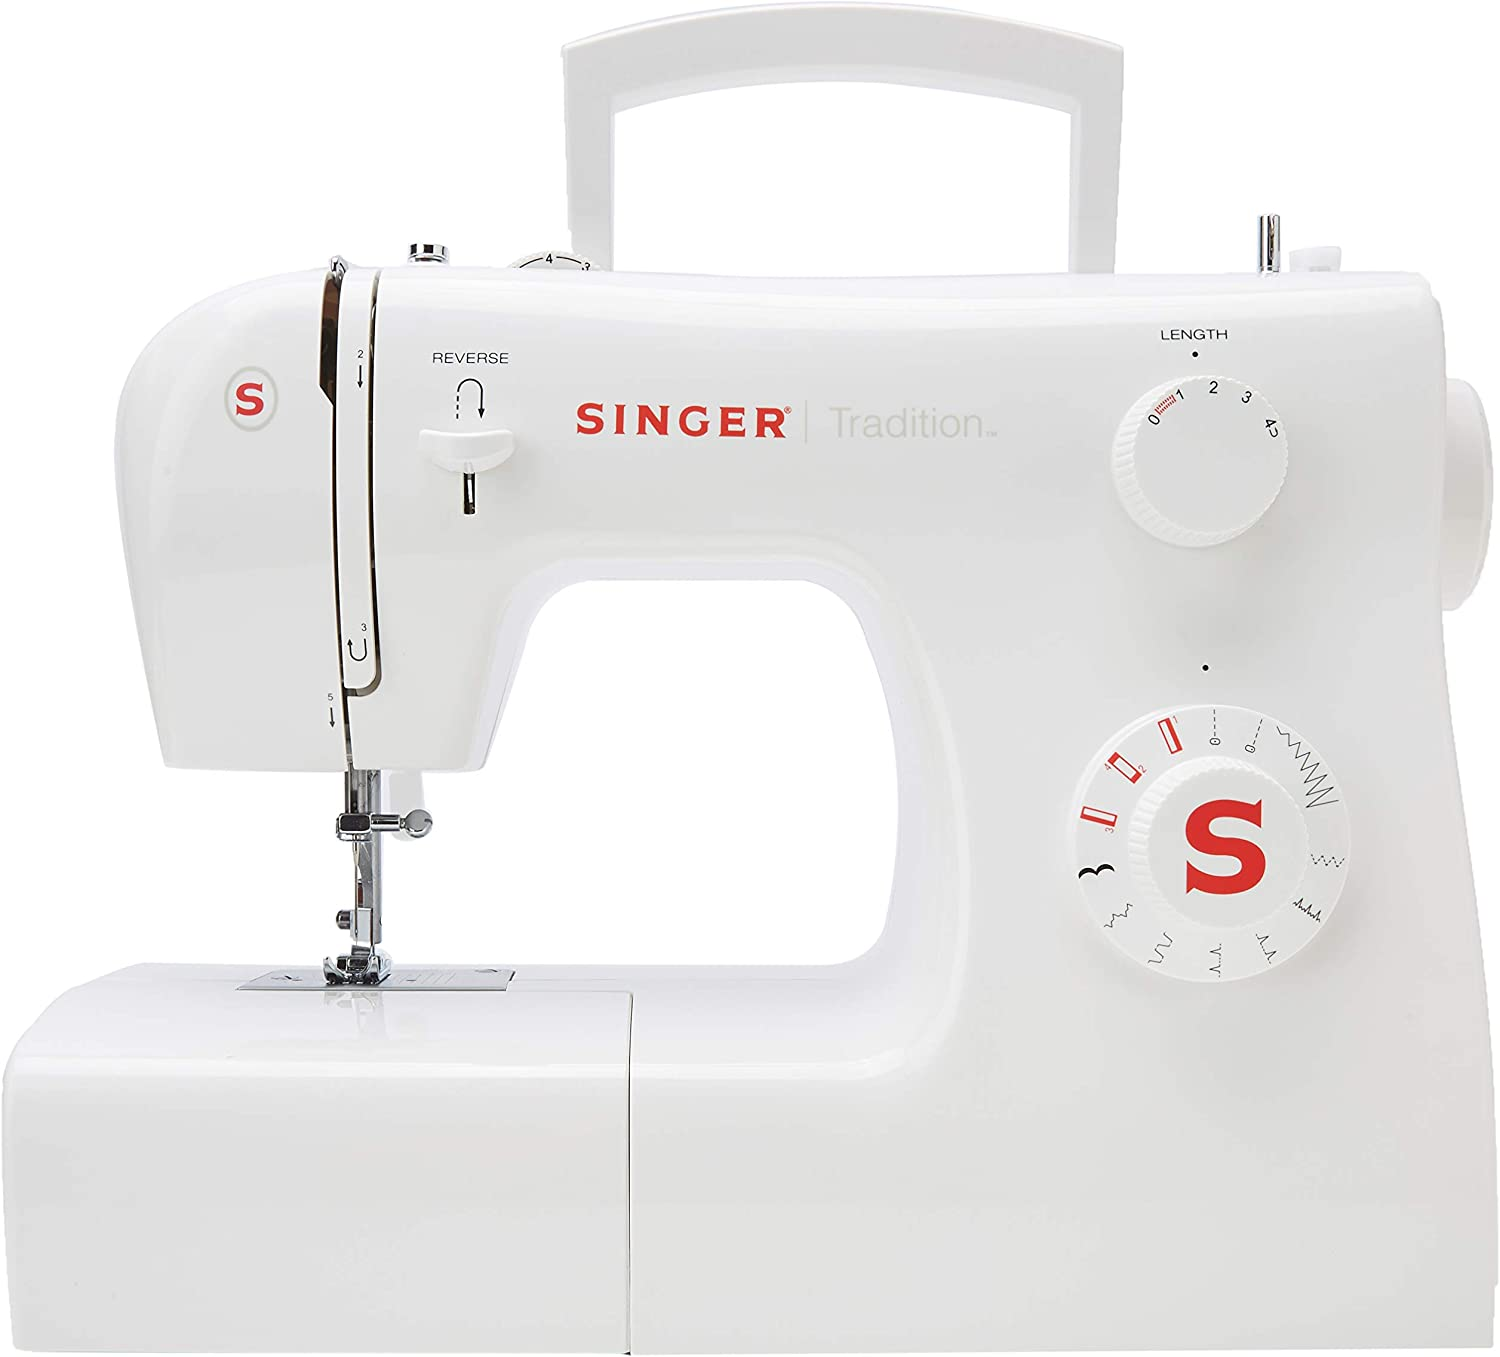 Maquina coser singer tradition